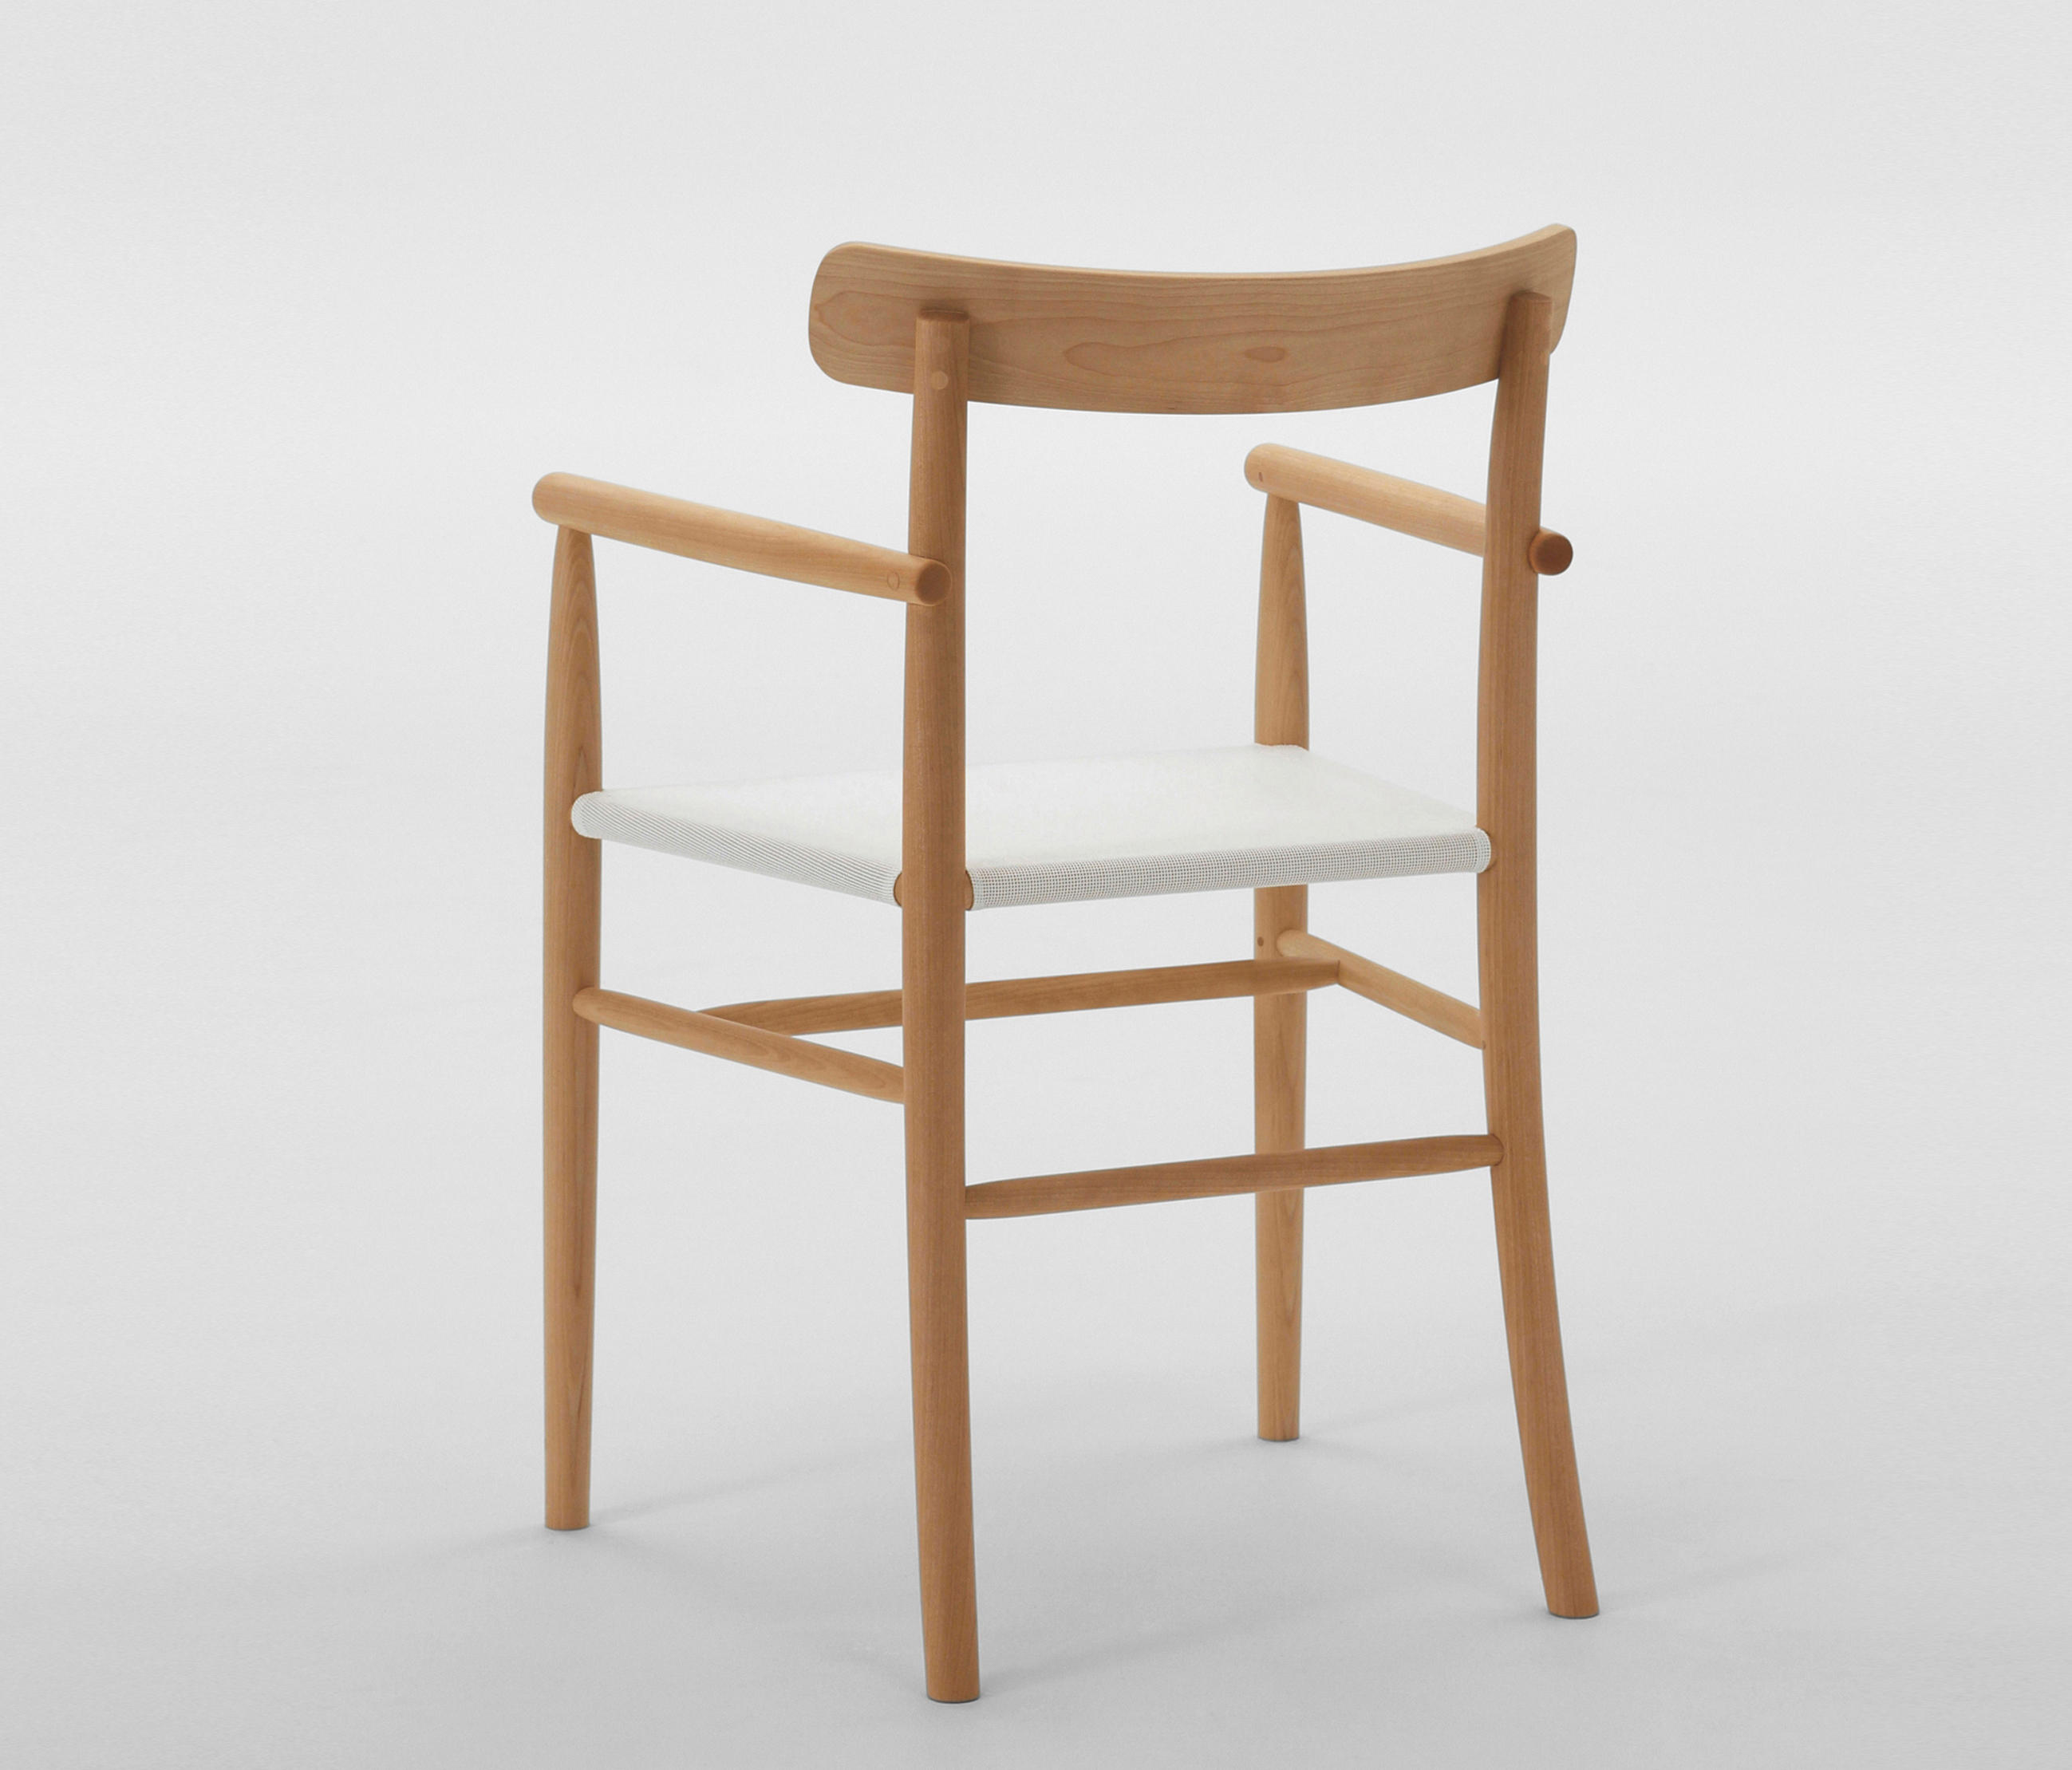 Ordinaire ... Lightwood Arm Chair (Mesh Seat) By MARUNI | Chairs ...